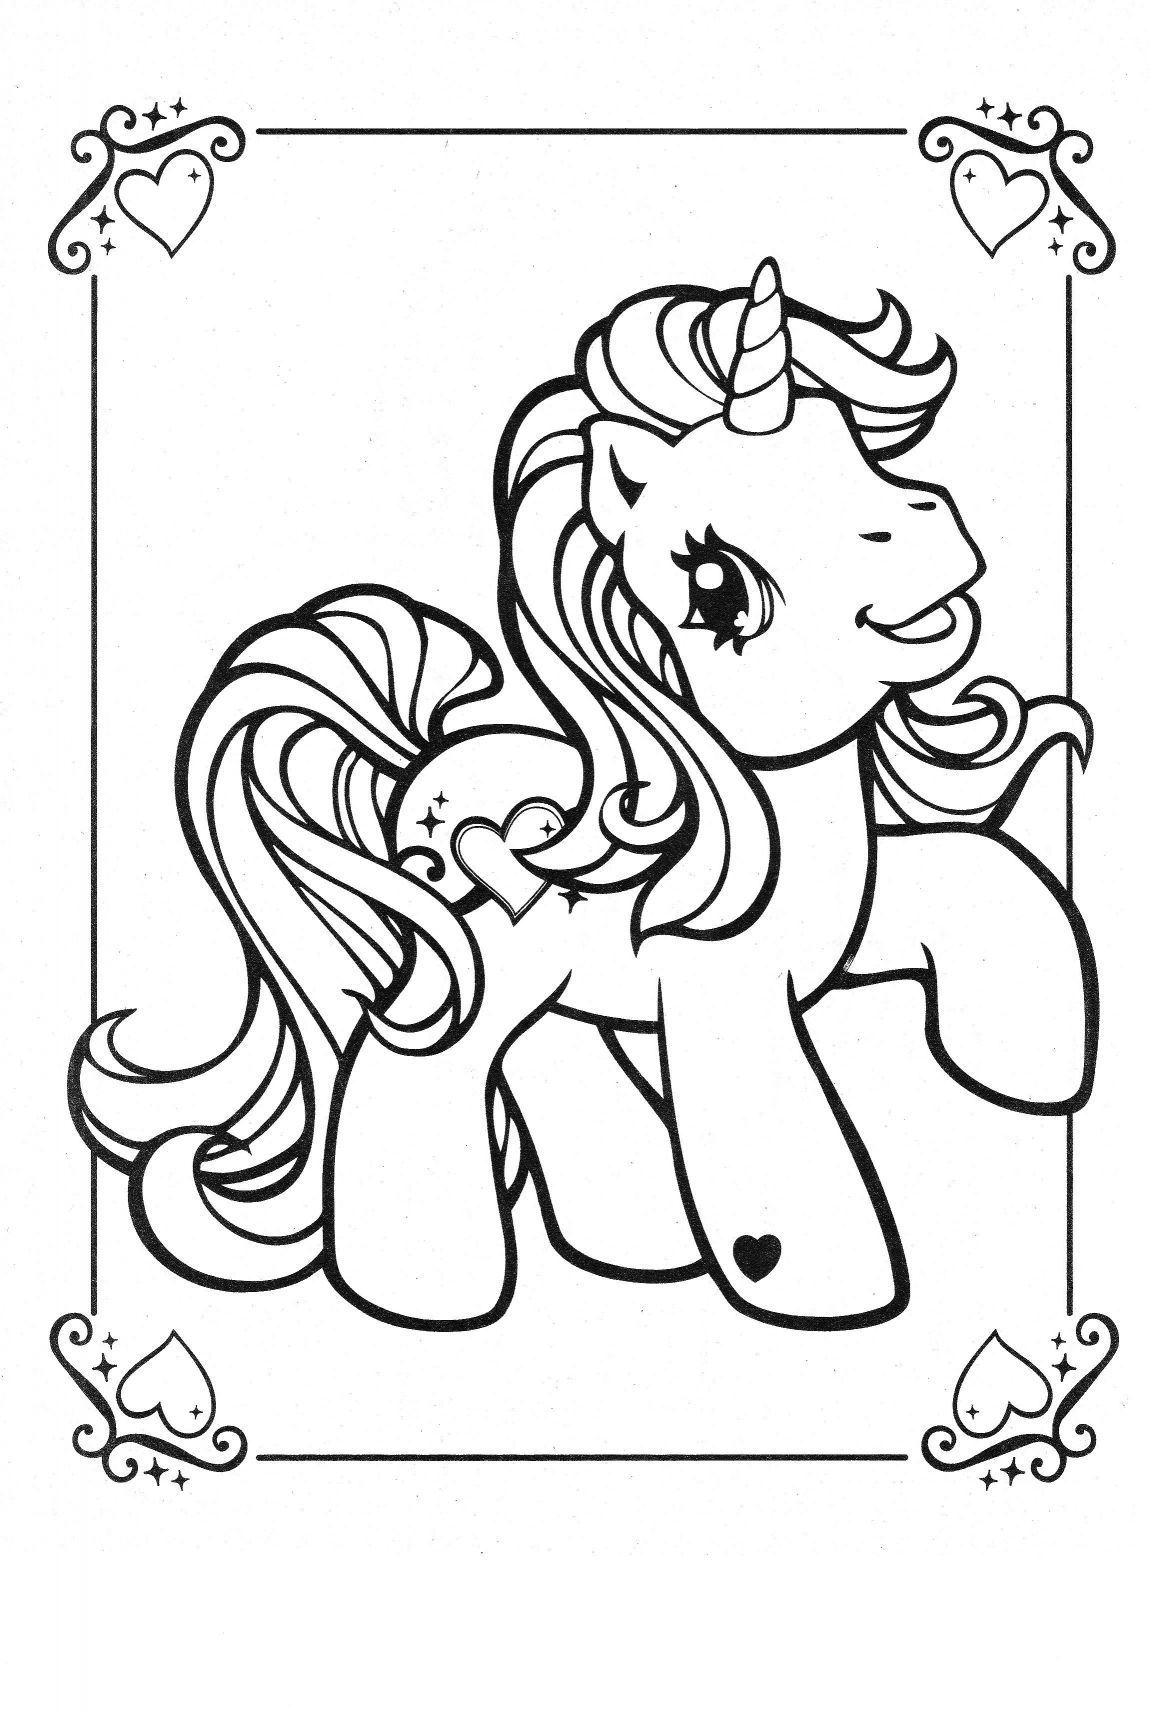 mlp color pages my little pony sweetie belle coloring pages at pages color mlp